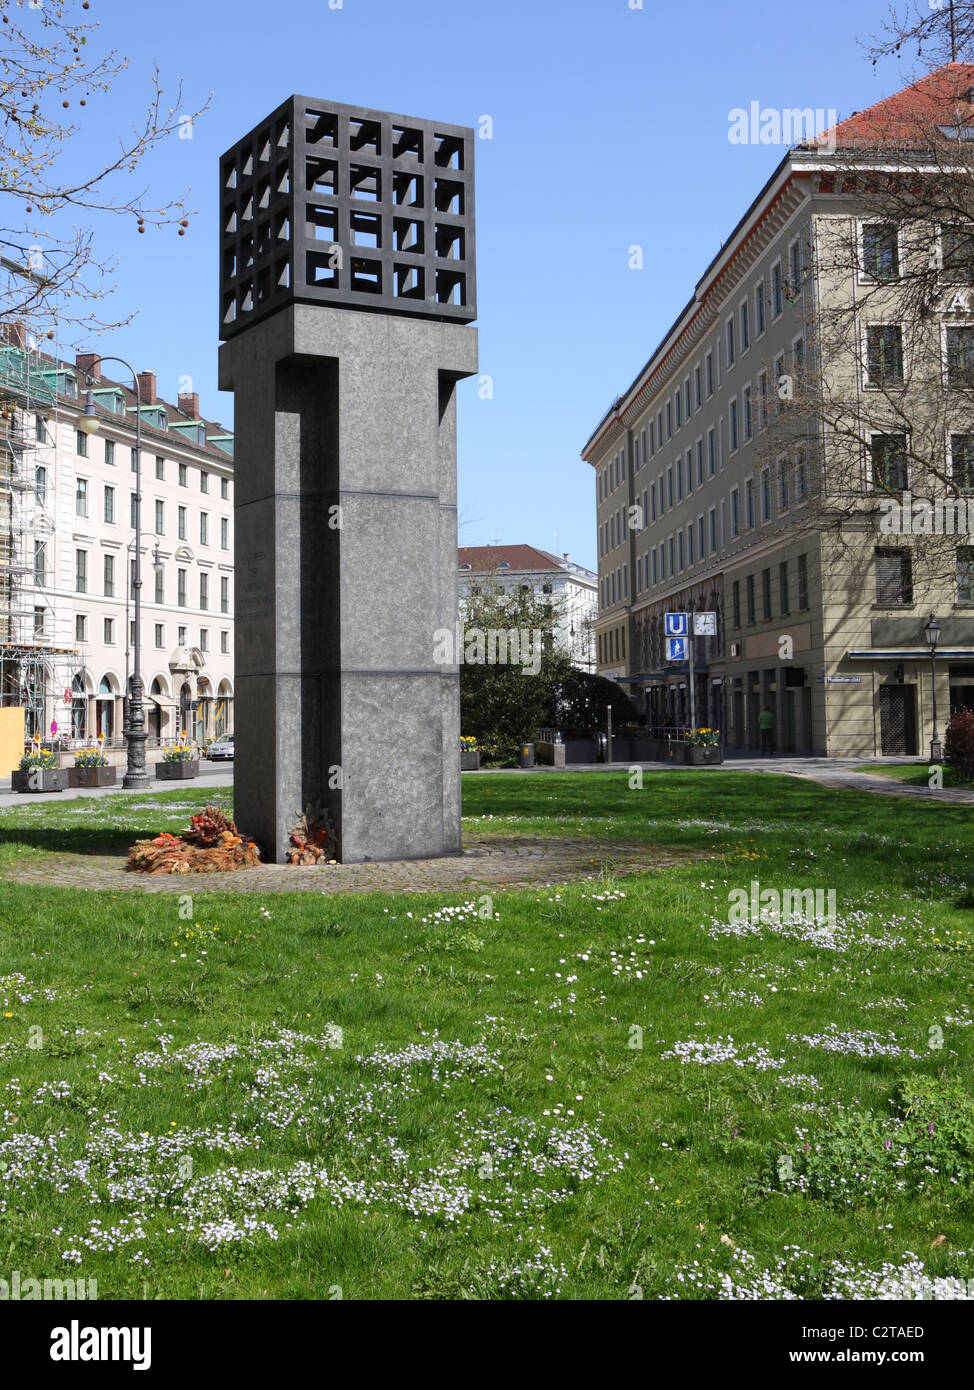 Platz der Opfer des Nationalsozialismus (memorial for the victims of the nazi-dictature) in Munich, Germany, Europe Stock Photo